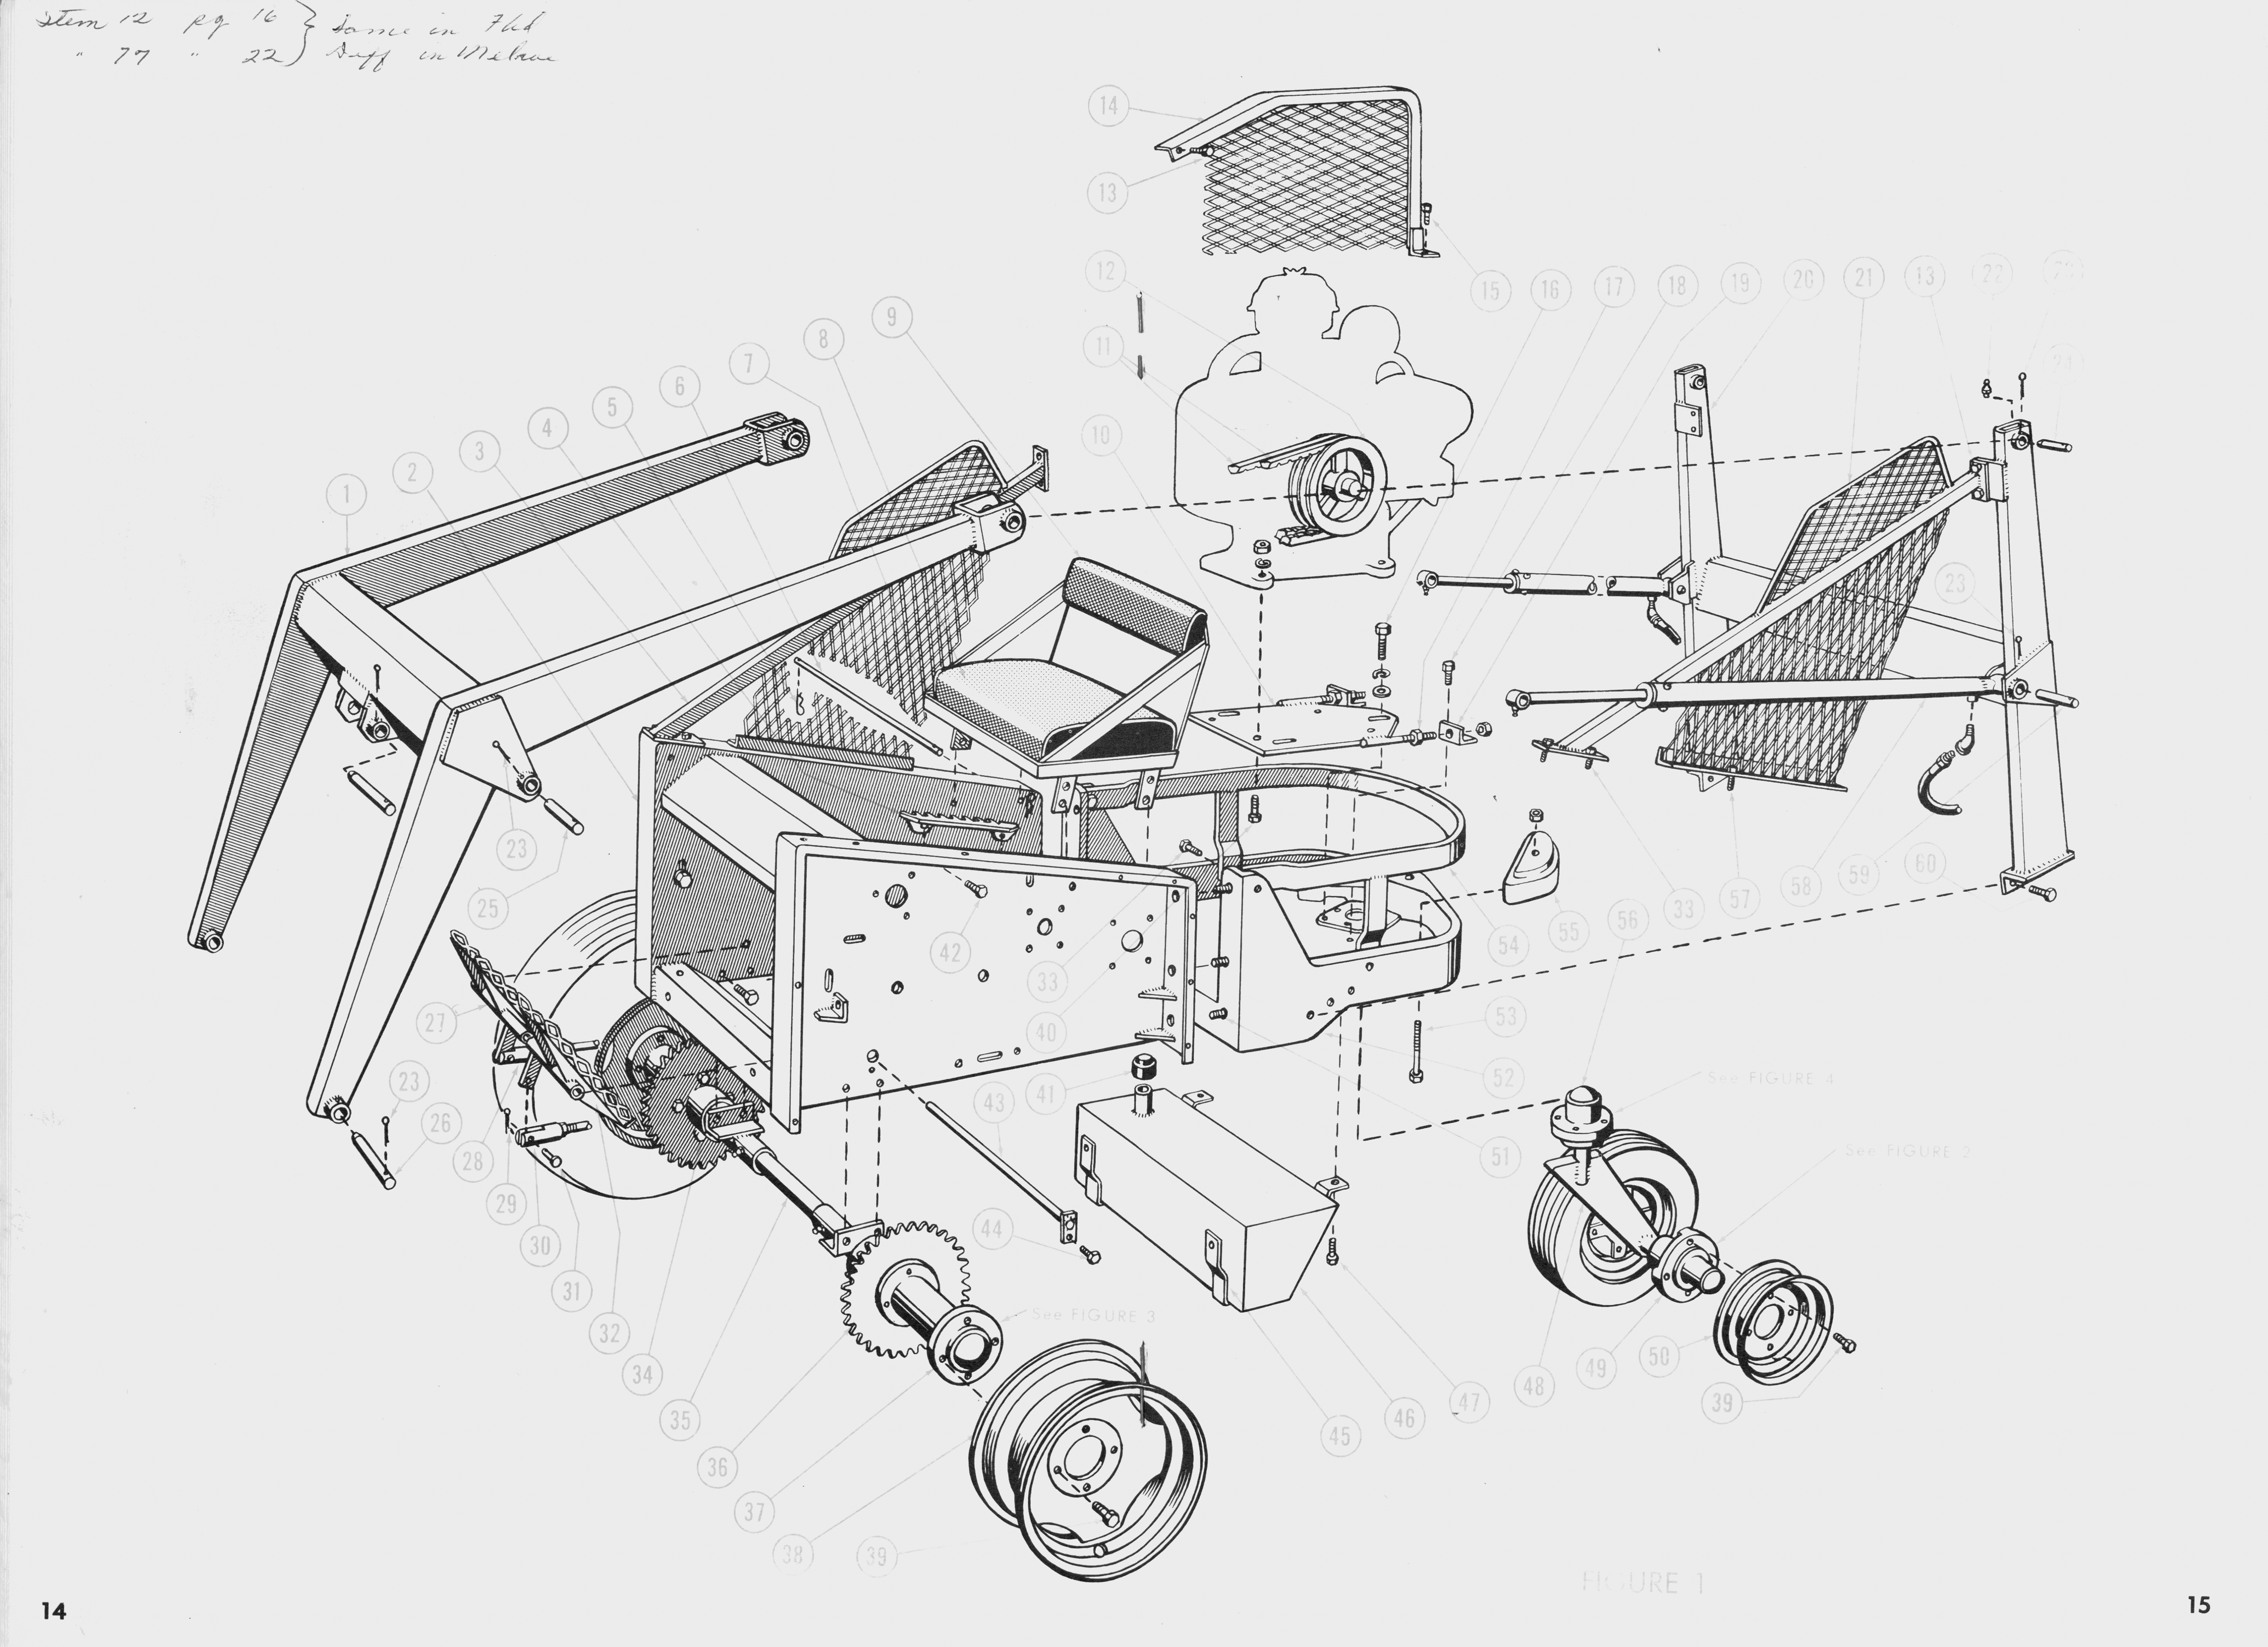 M200 assembly drawing, 1959